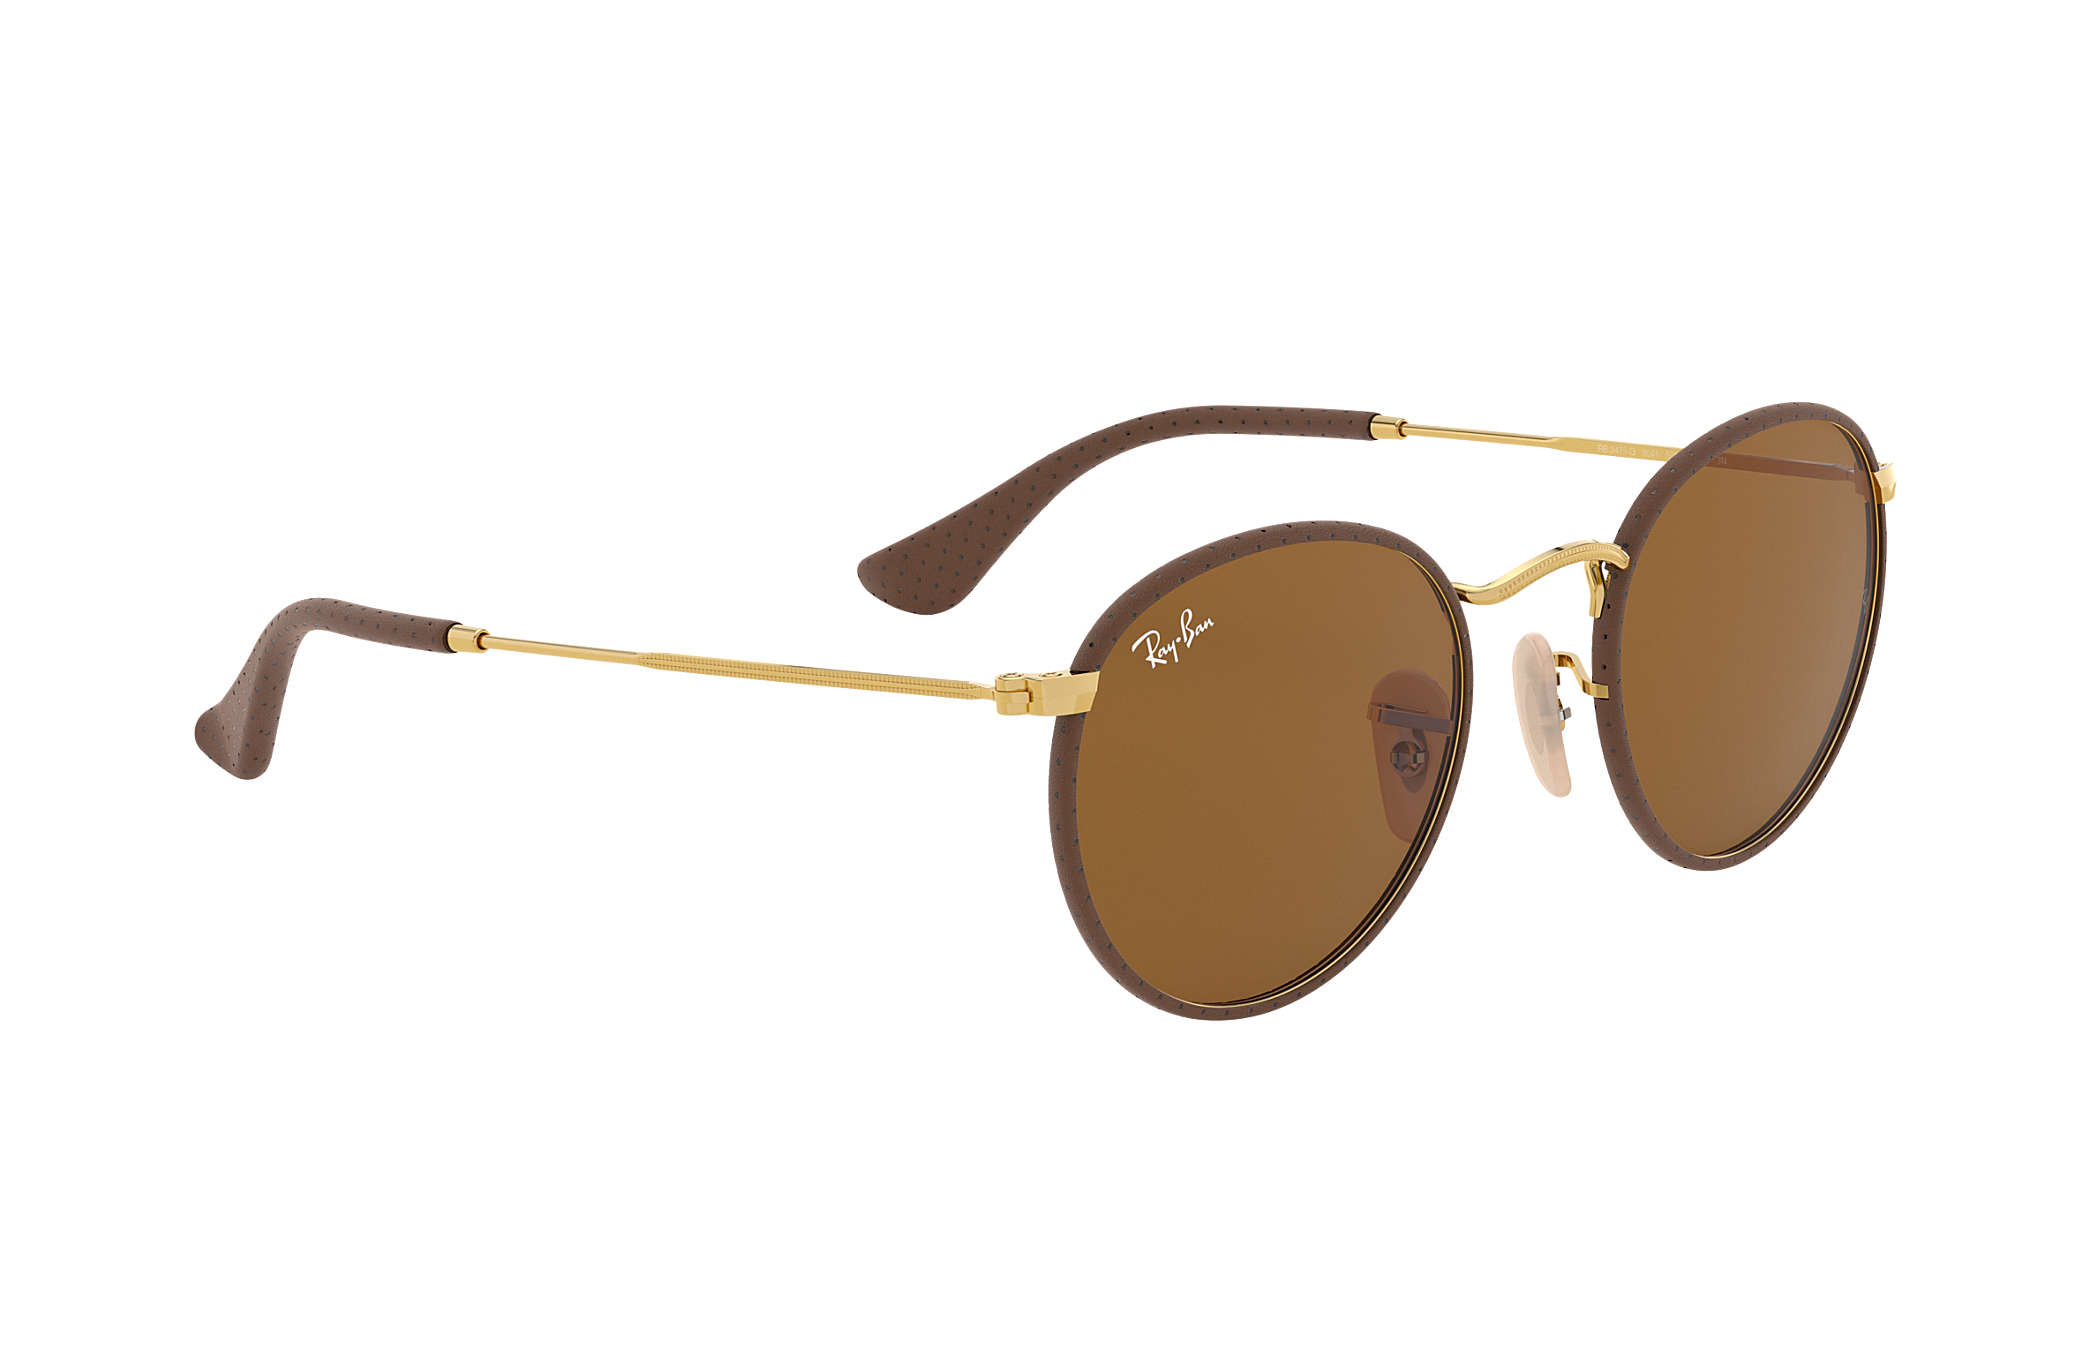 Ray-Ban Round Craft RB3475Q 9041 50-21 vsbPMnV